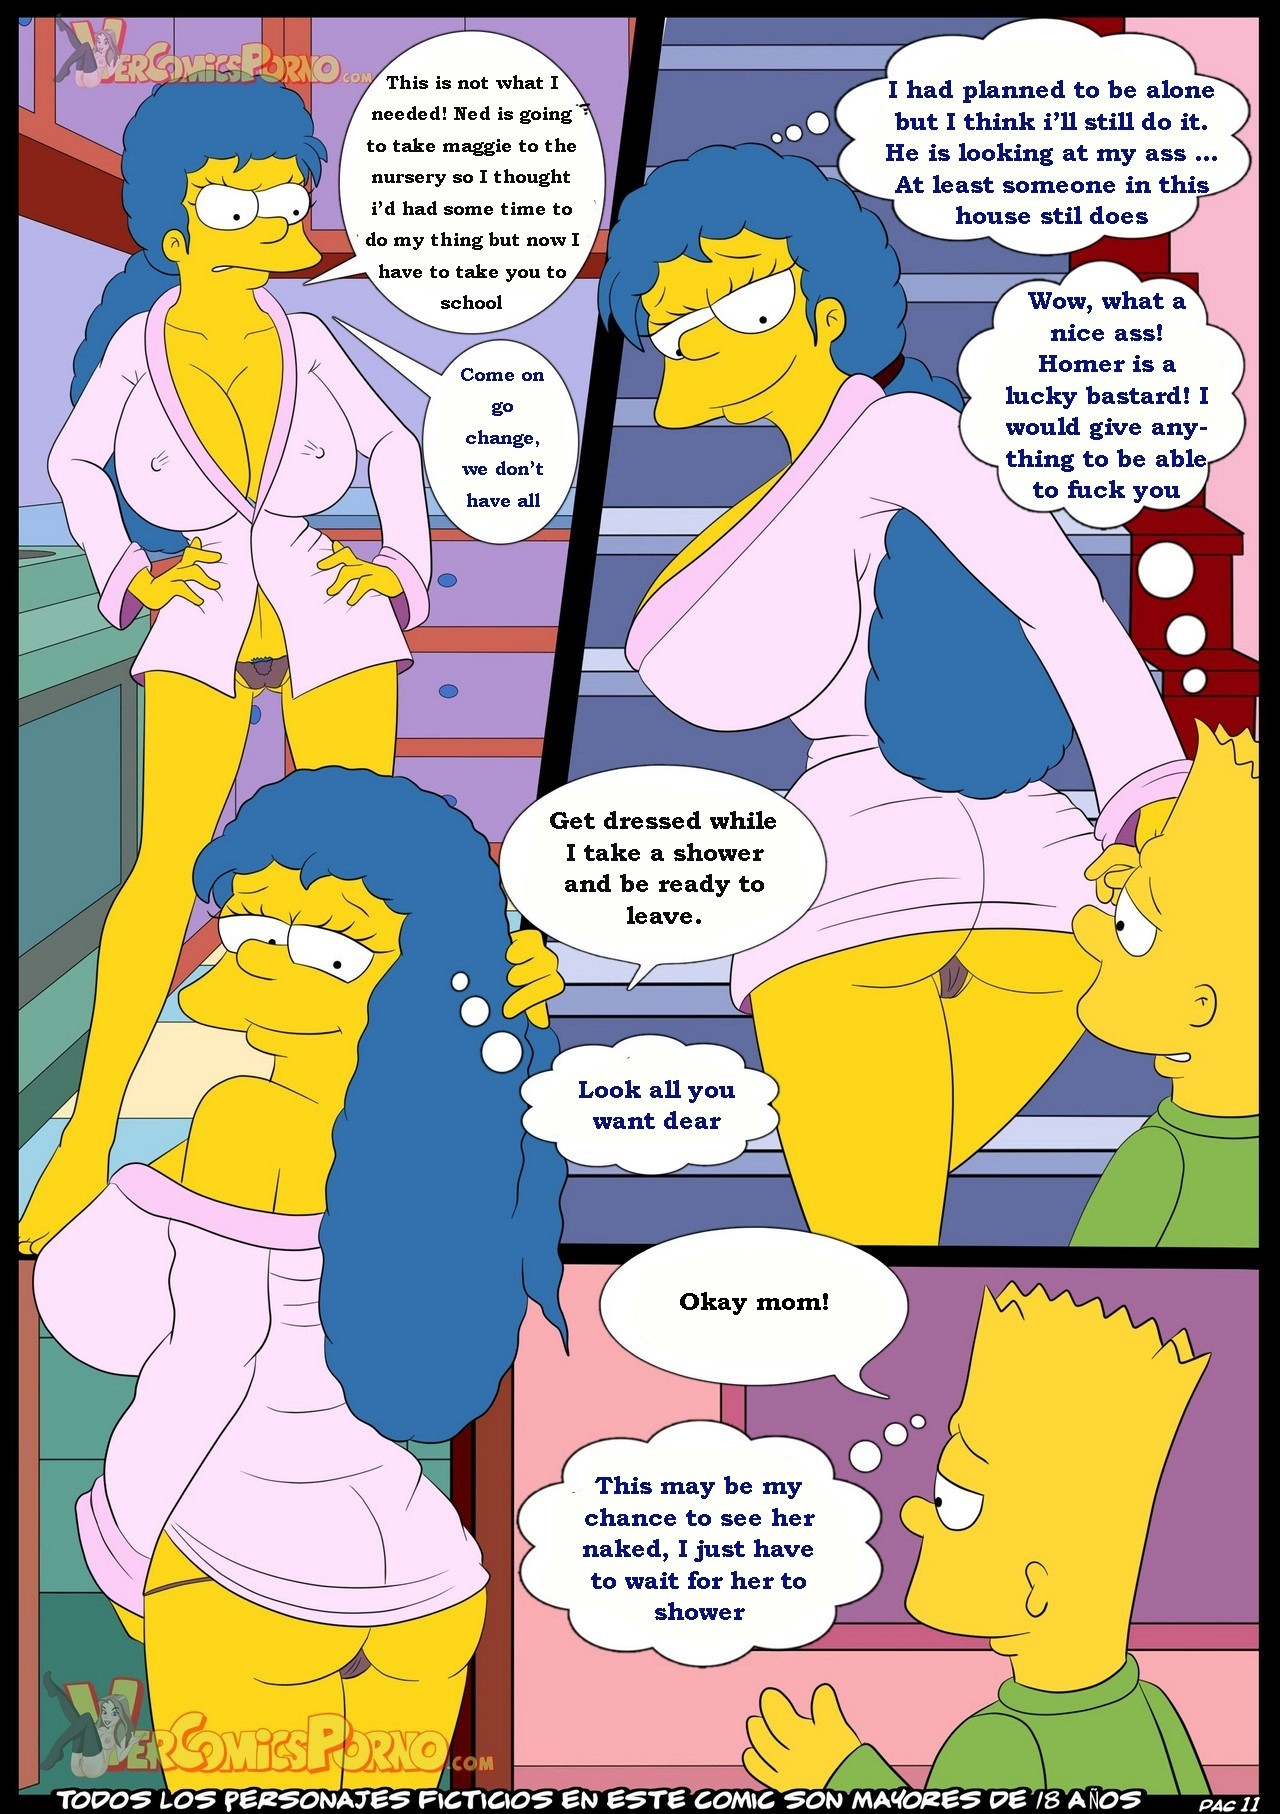 12 31 - The Simpsons. Part 3.